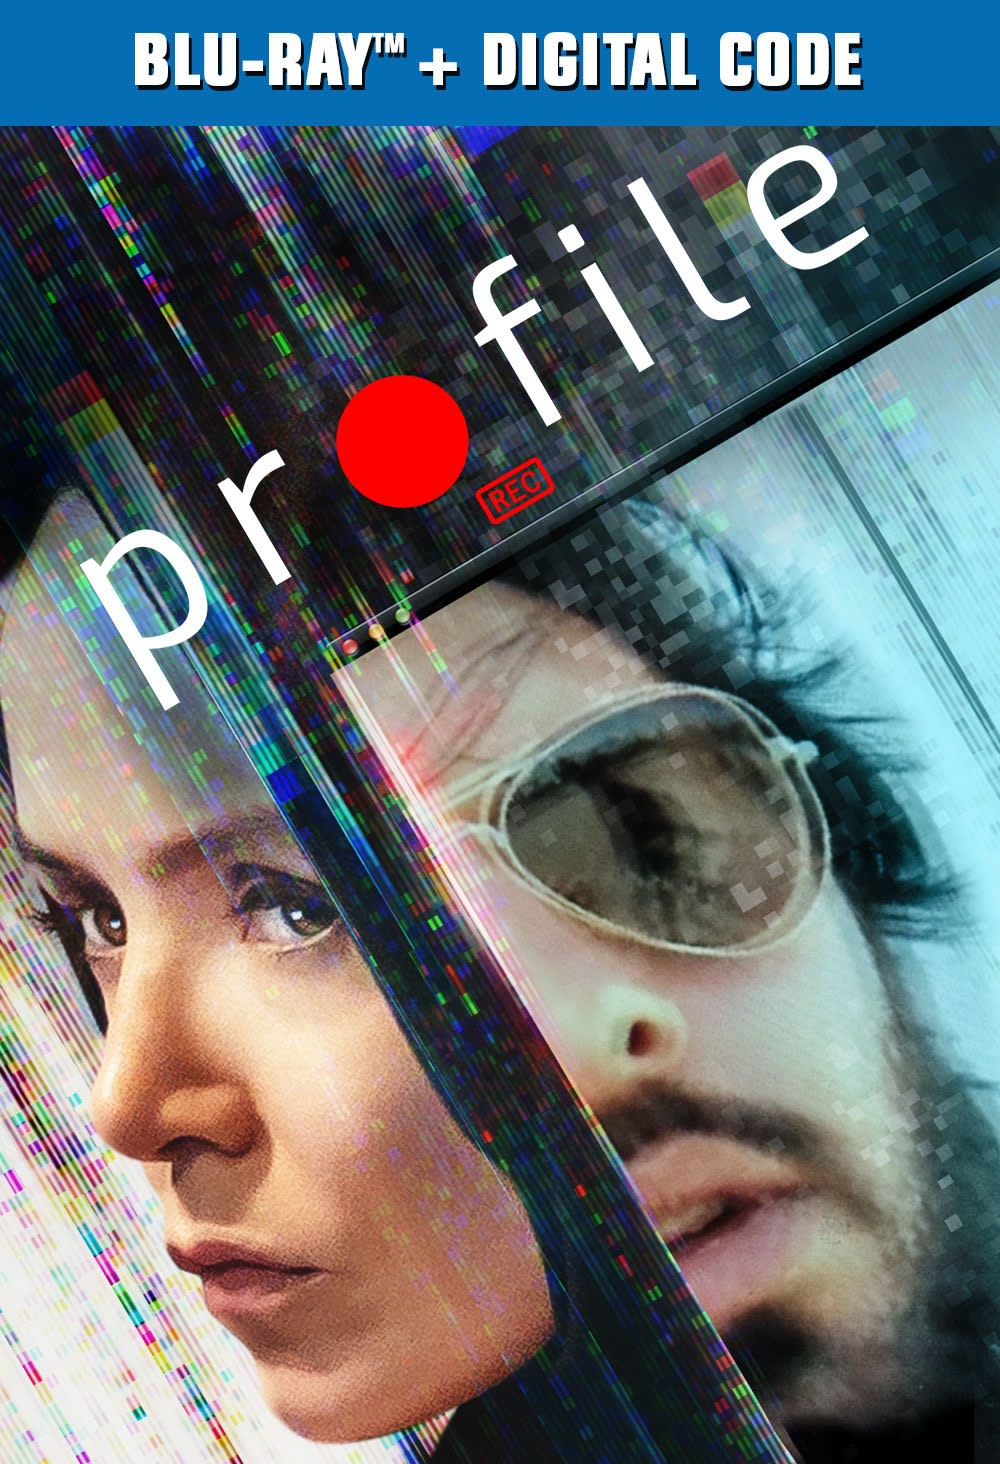 Profile [Blu-ray]